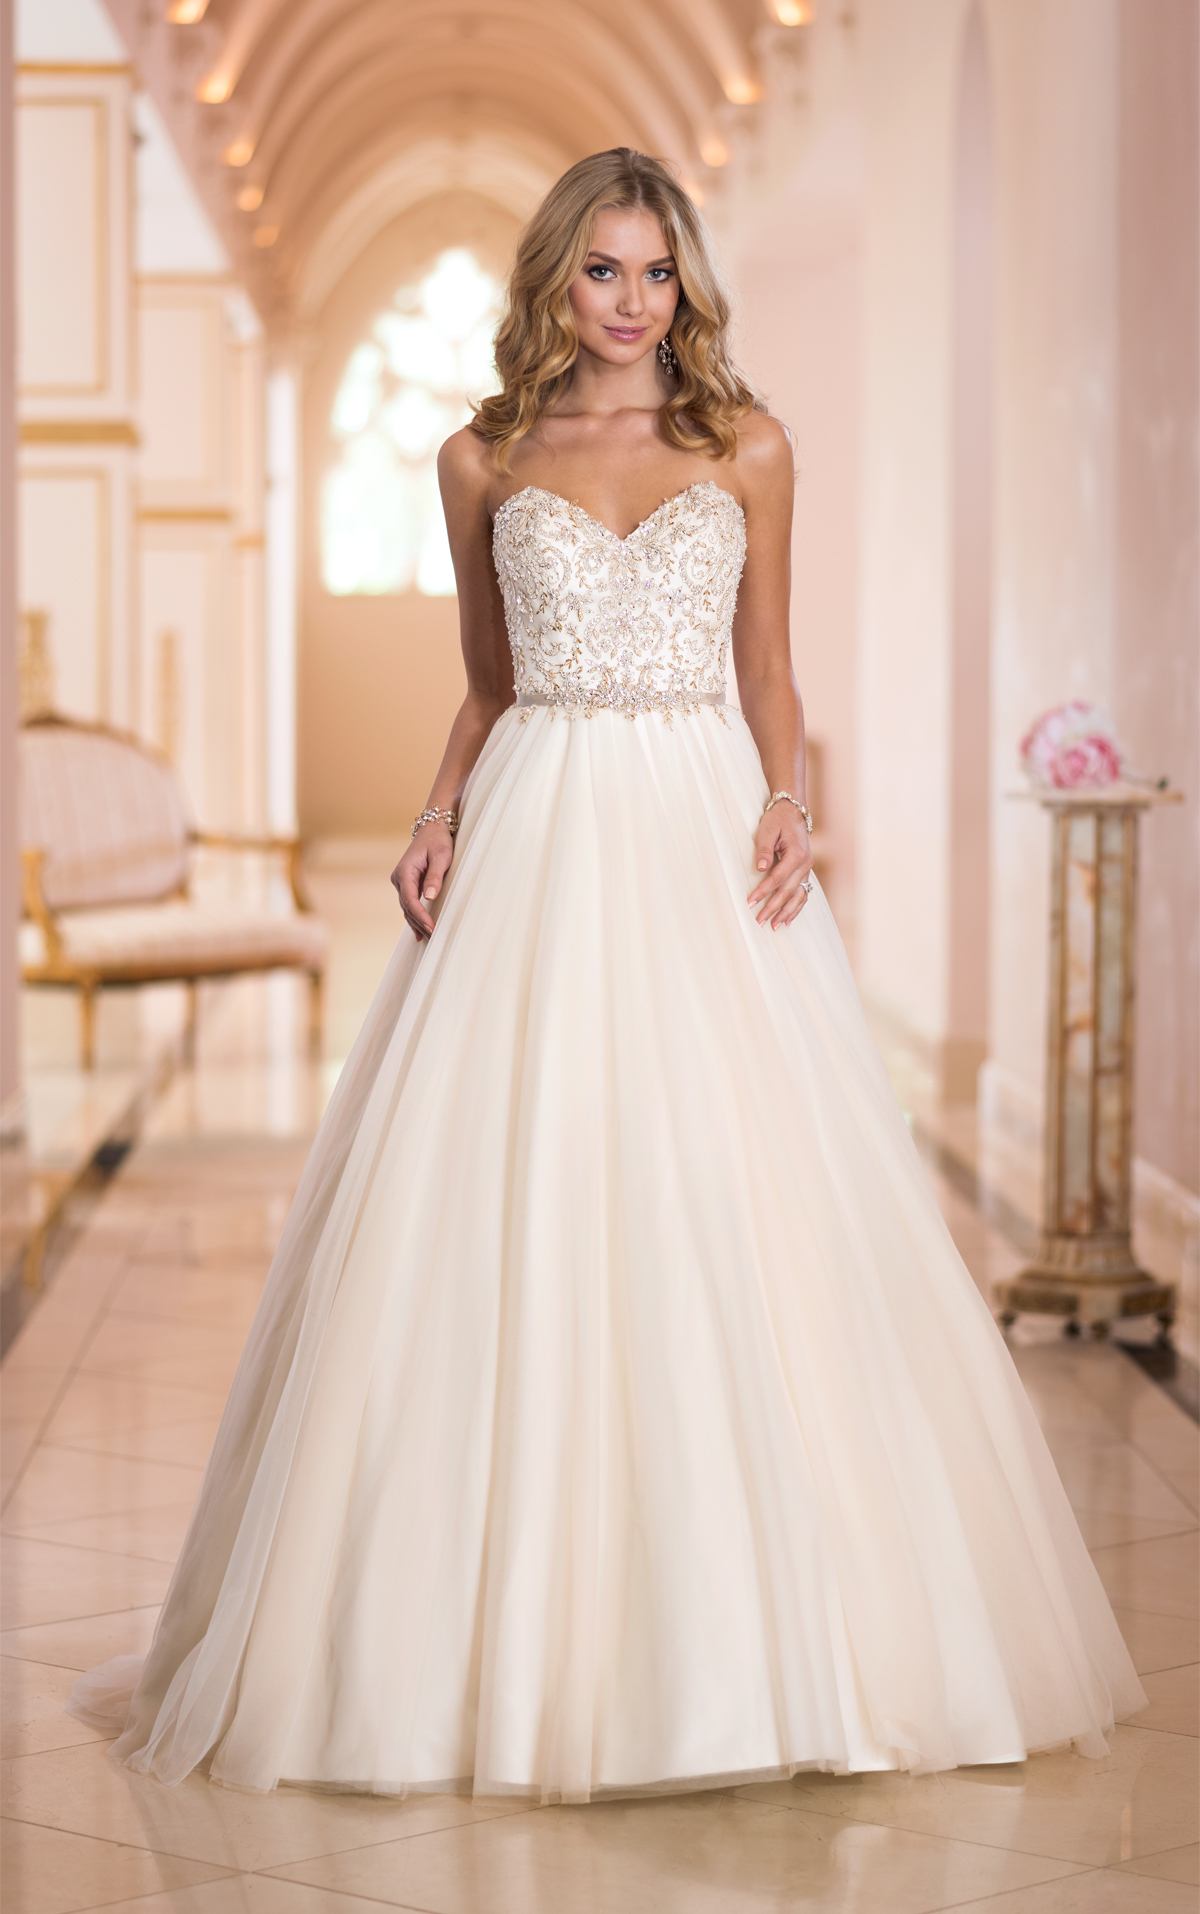 Sexy and Extravagant Stella York Wedding Dresses 2014 - MODwedding